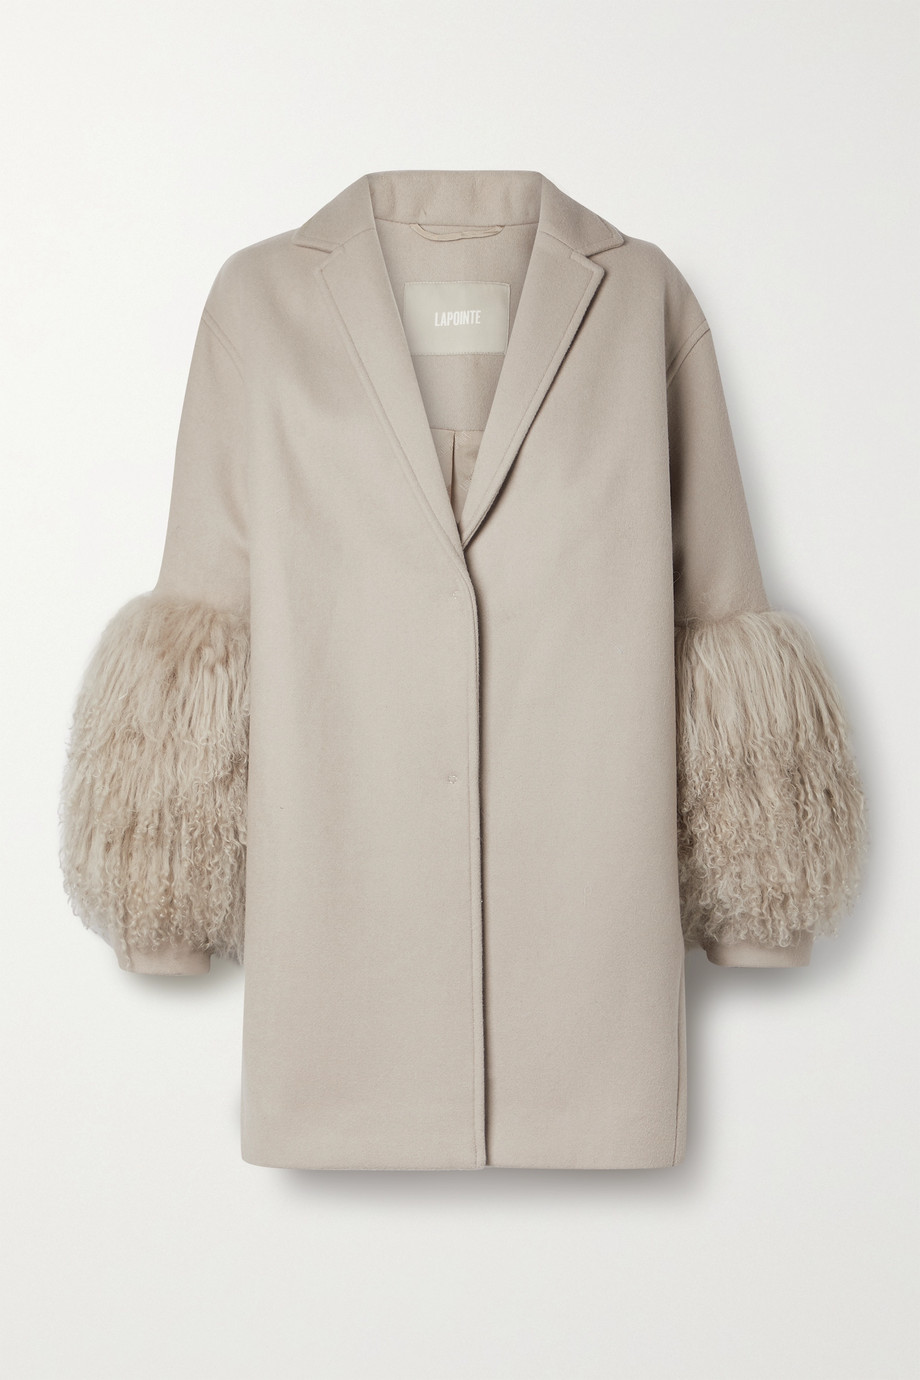 LAPOINTE Shearling-trimmed wool and cashmere-blend coat